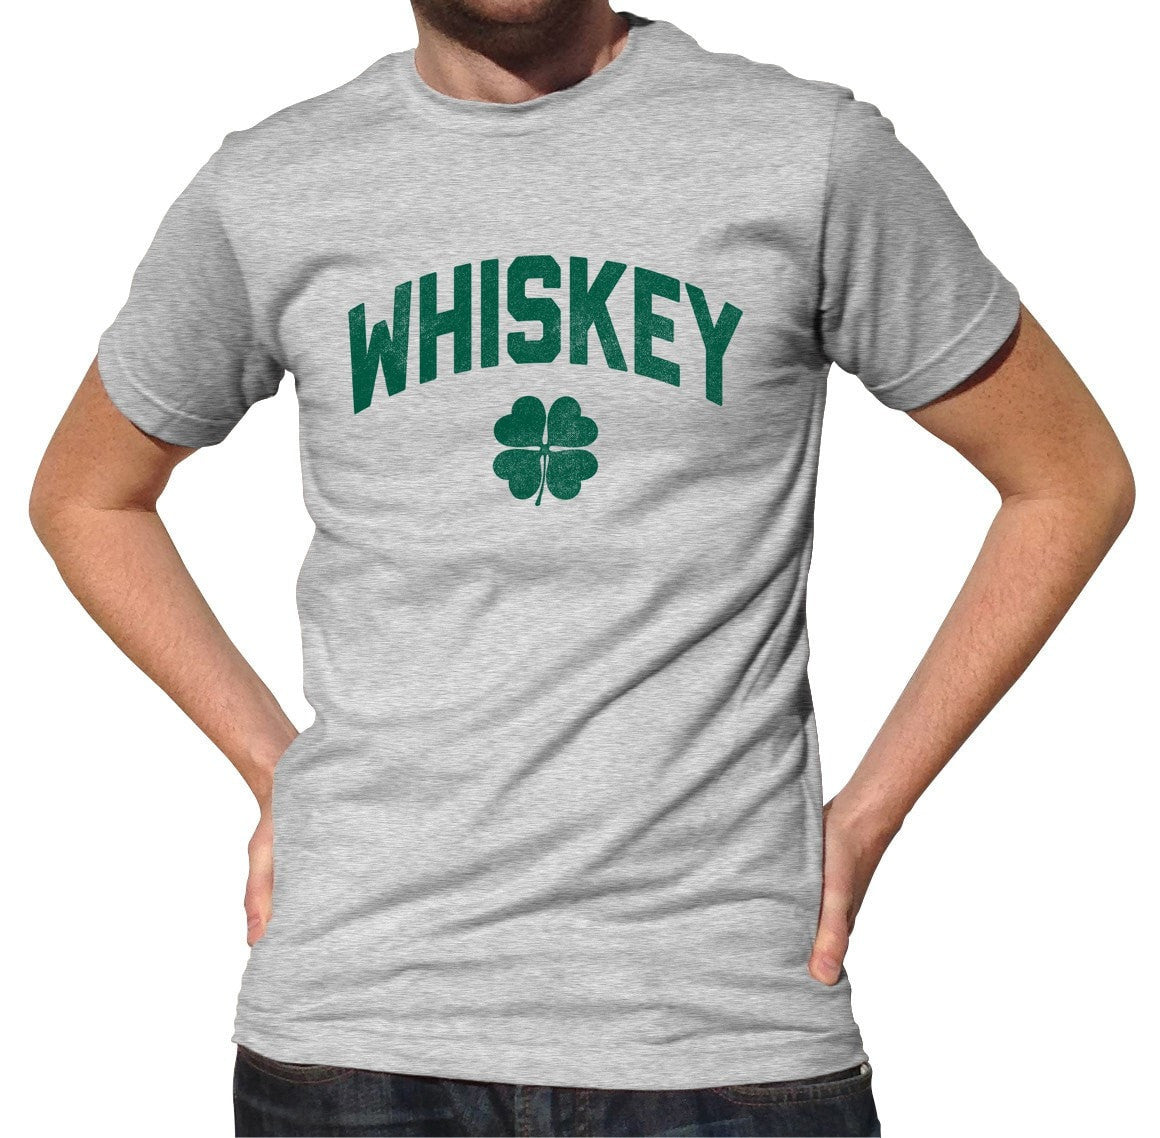 Men's Team Whiskey T-Shirt